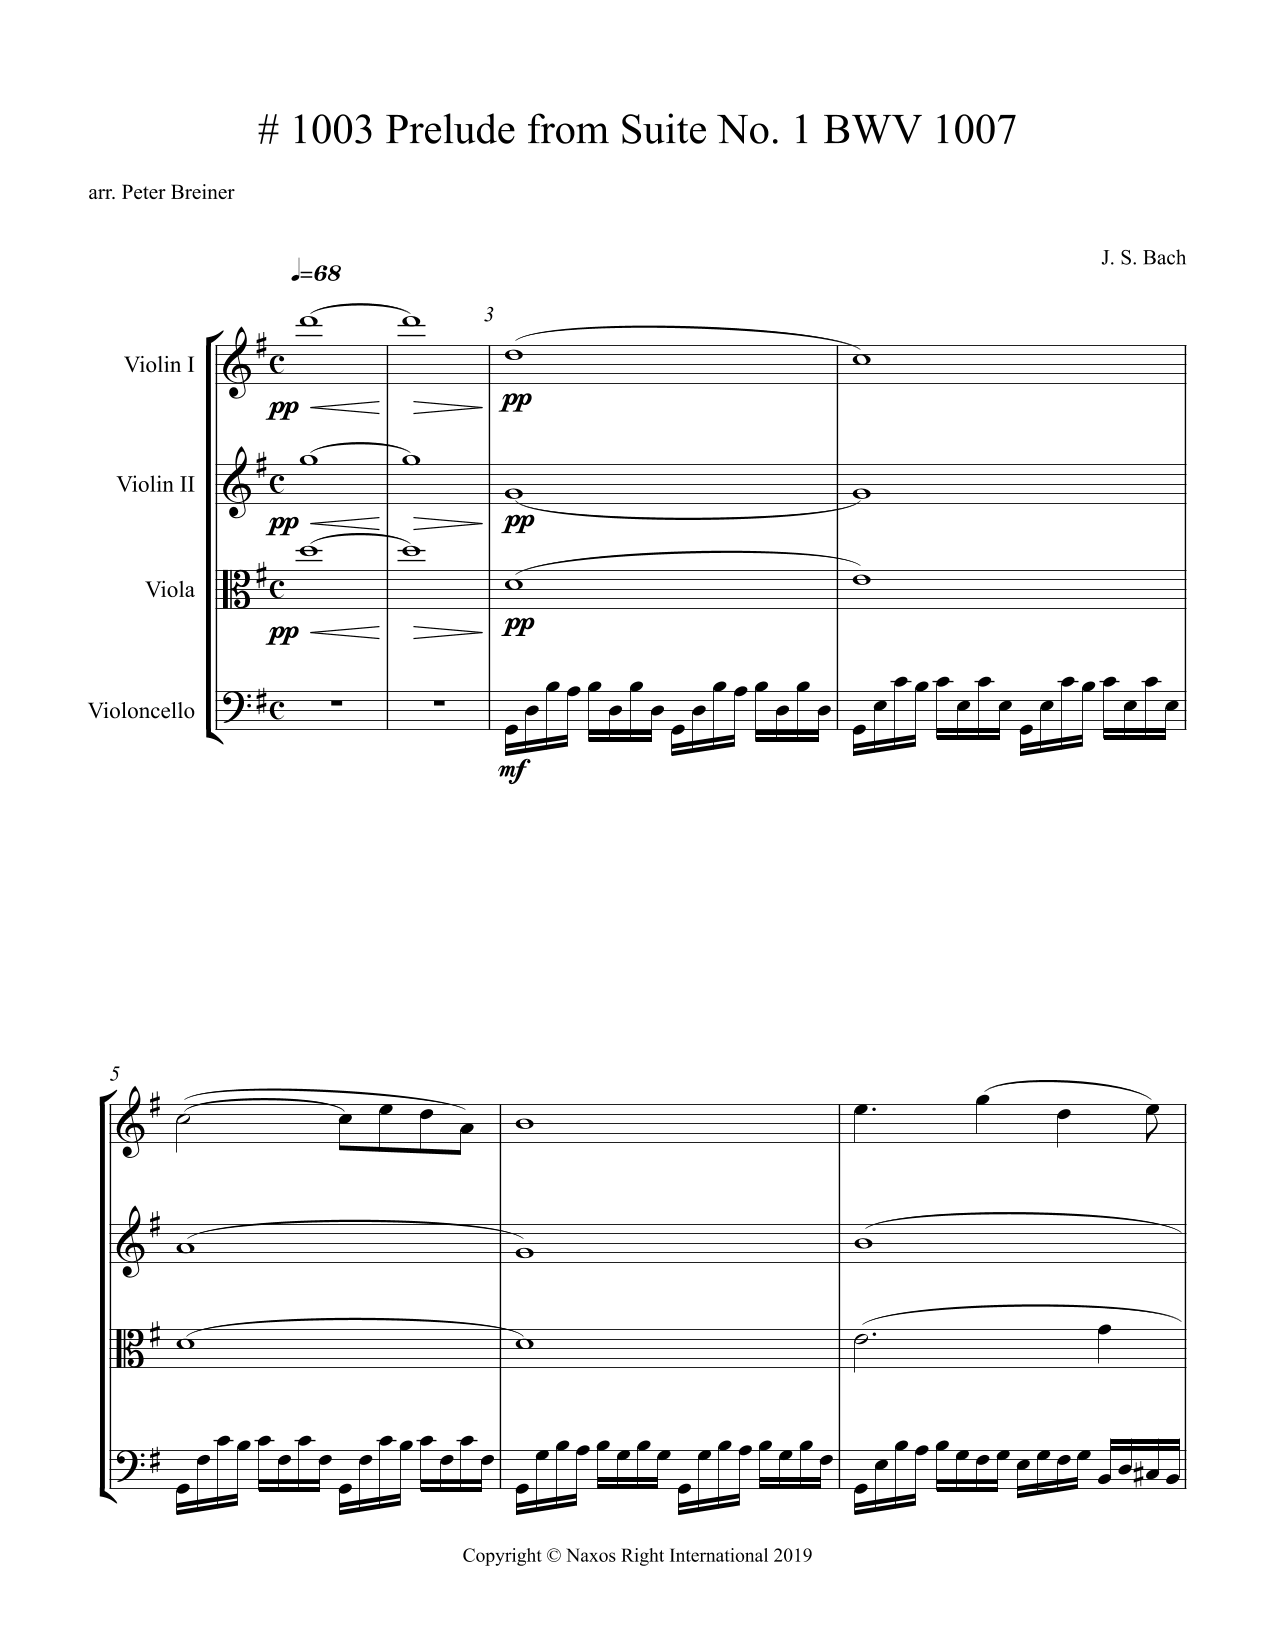 J.S. Bach: Prelude from Suite No.1, BWV 1007 – Arrangement for String Quartet by Peter Breiner (PB114)